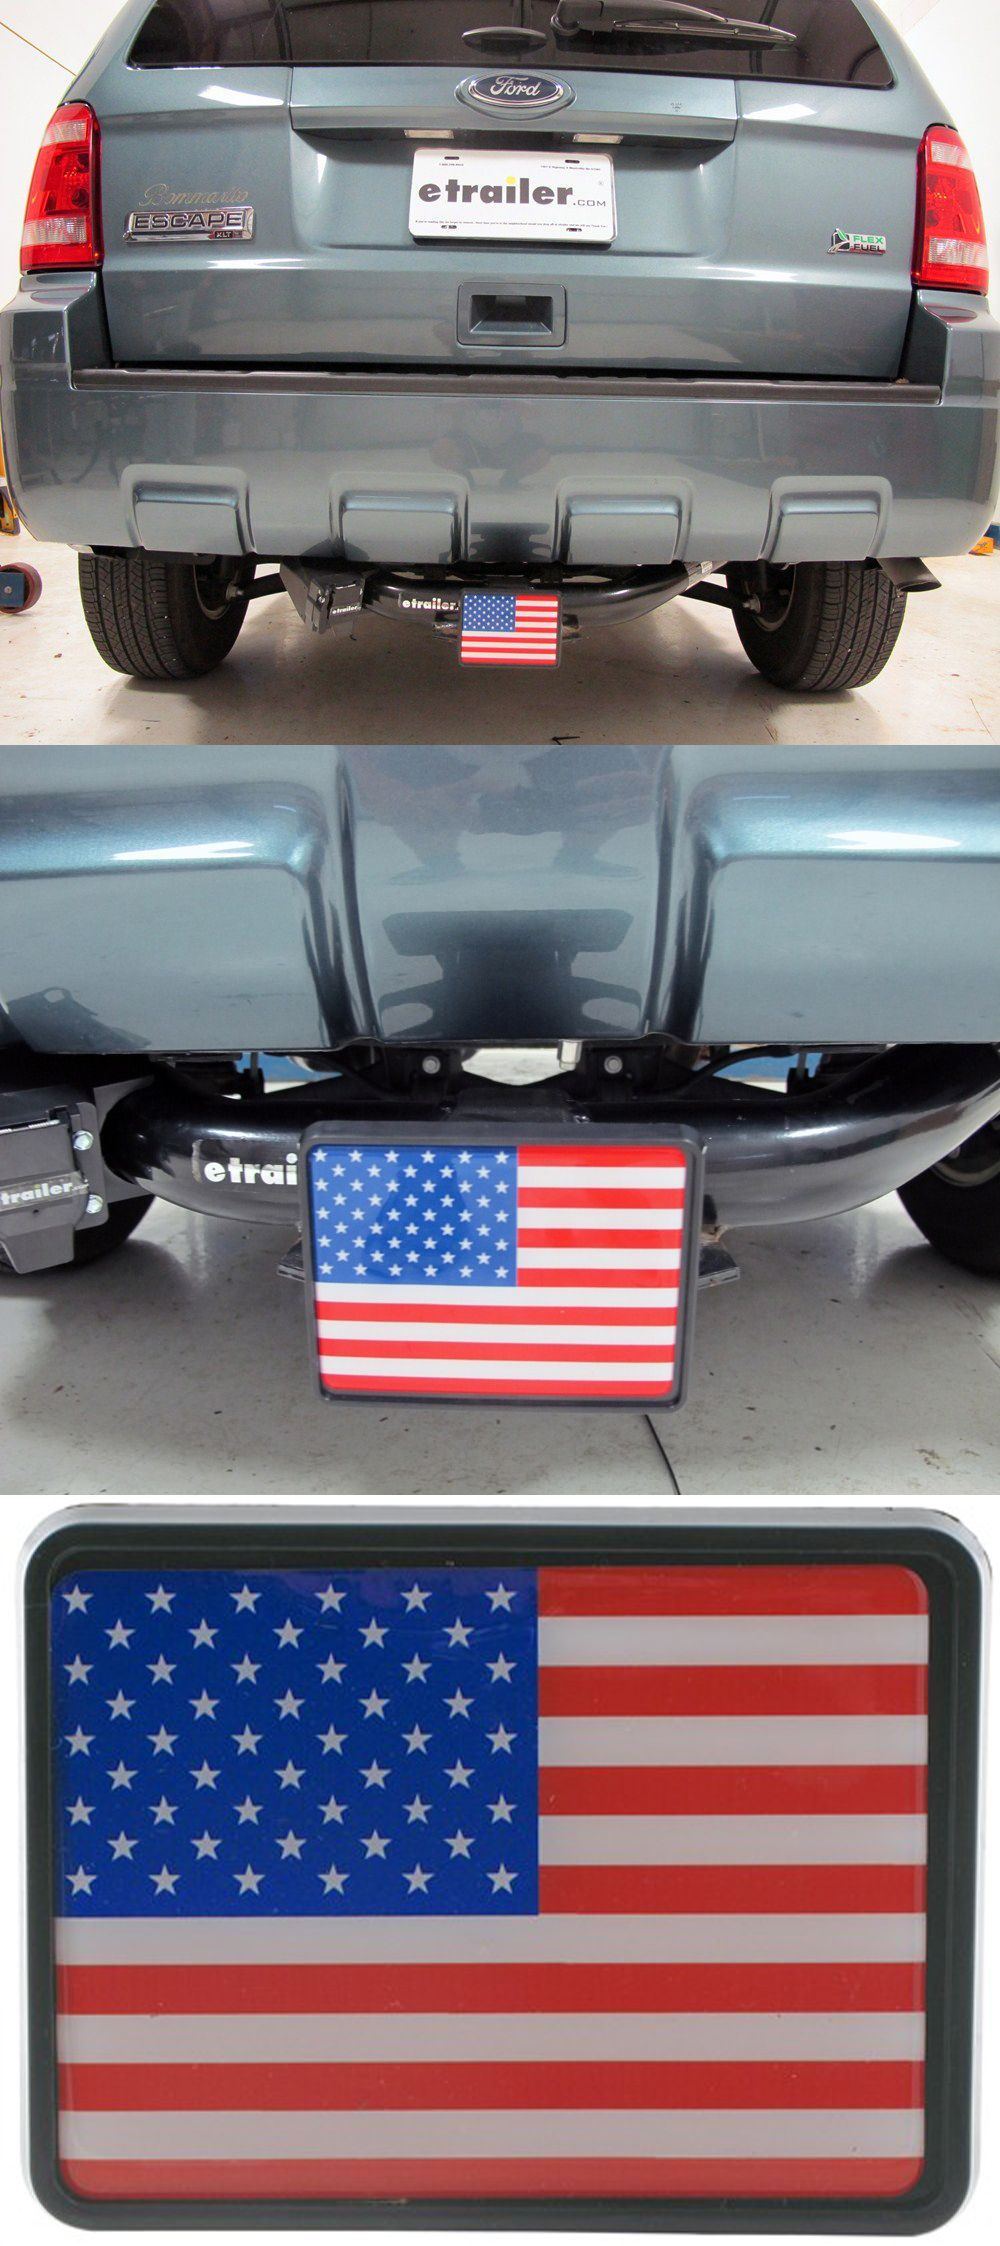 American Flag Hitch Plug - awesome for when bike racks and trailers are not in use! A cool idea to show some of that country pride! This accessory is compatible with many vehicles and hitches, including the Ford Escape!